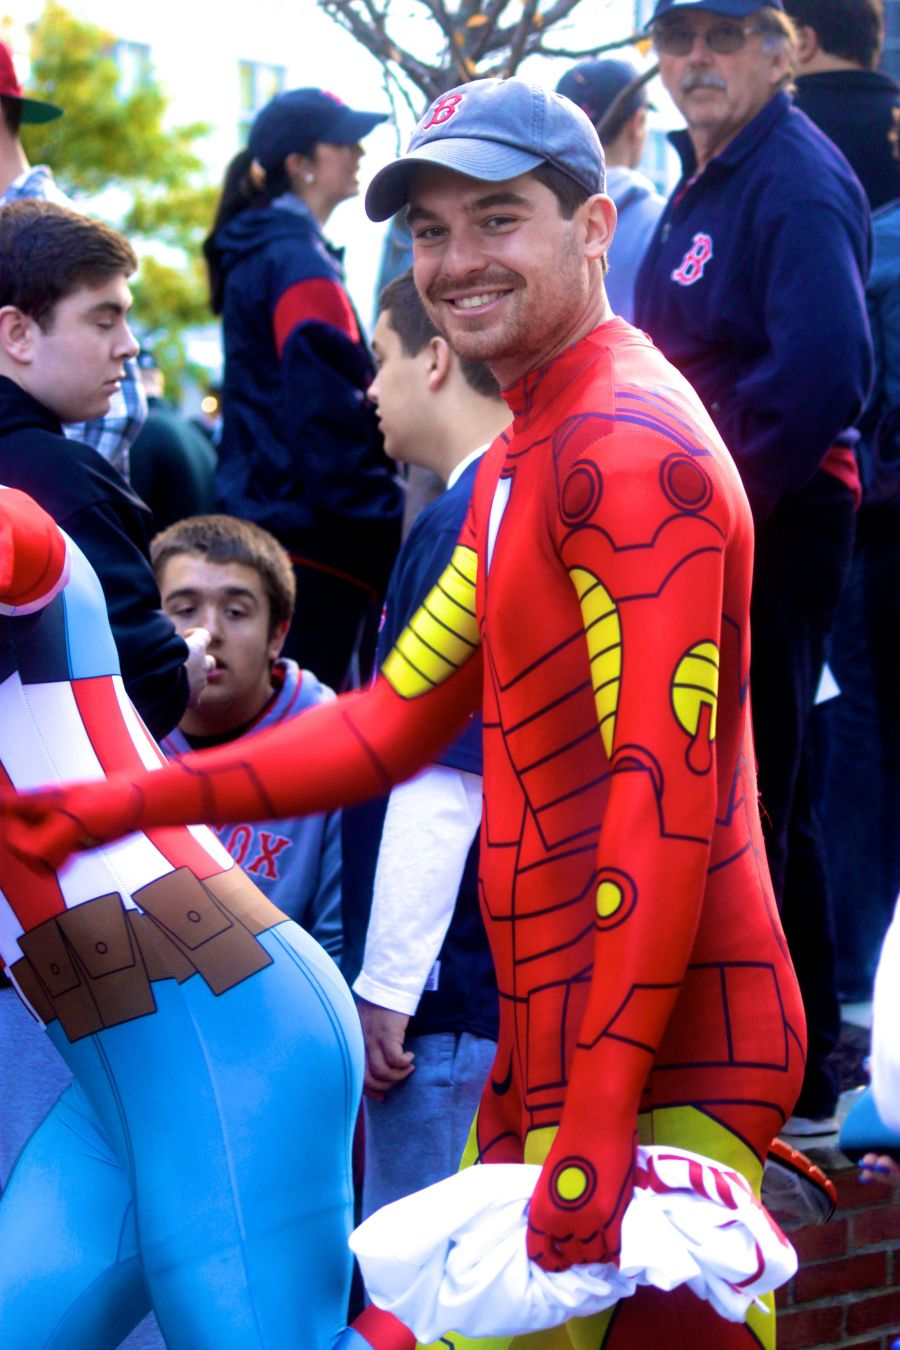 boston red sox world series celebration 2013 man in red body suit